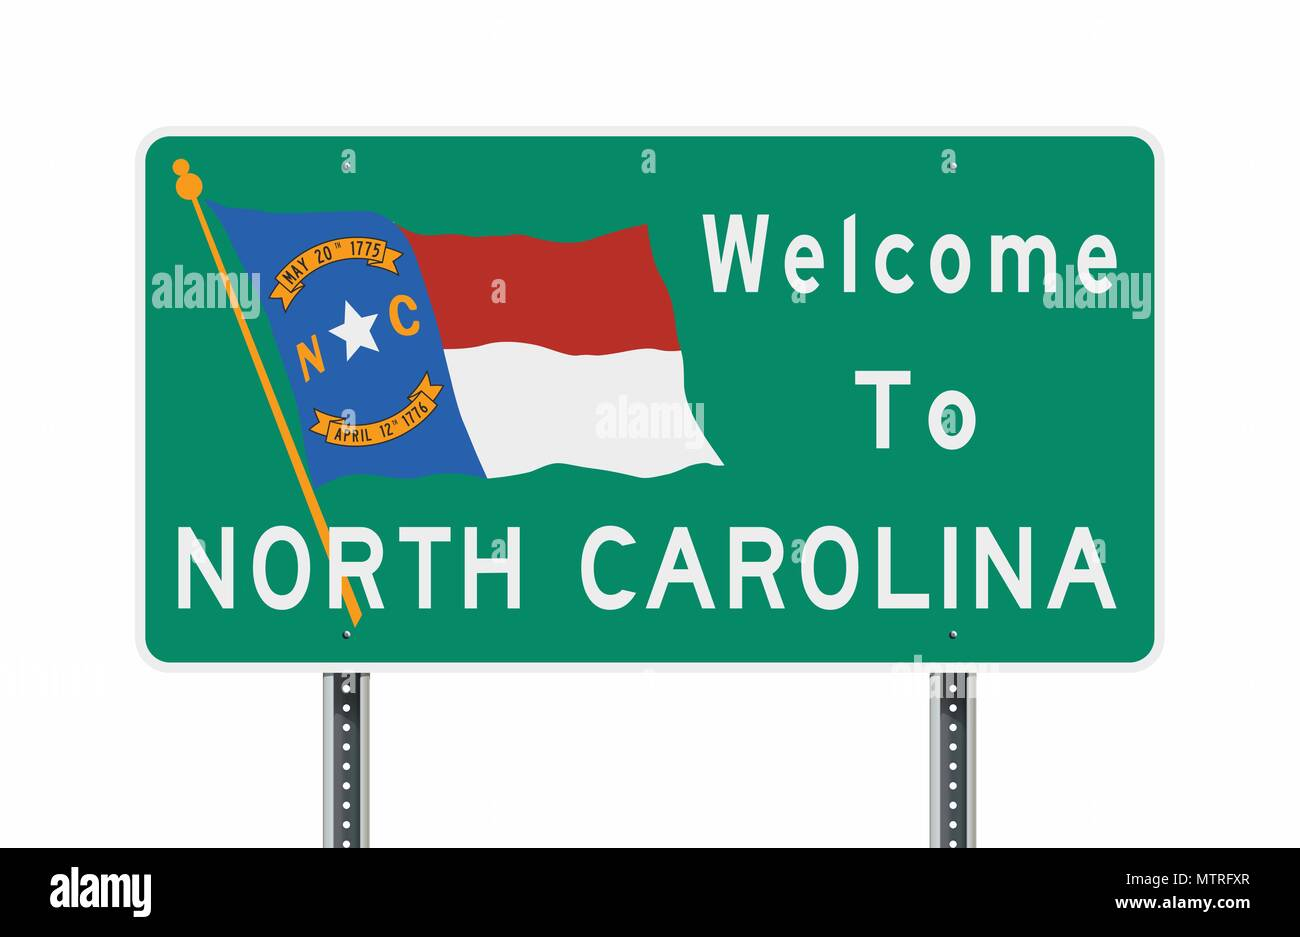 Vector illustration of the Welcome to North Carolina green road sign with North Carolina flag - Stock Image